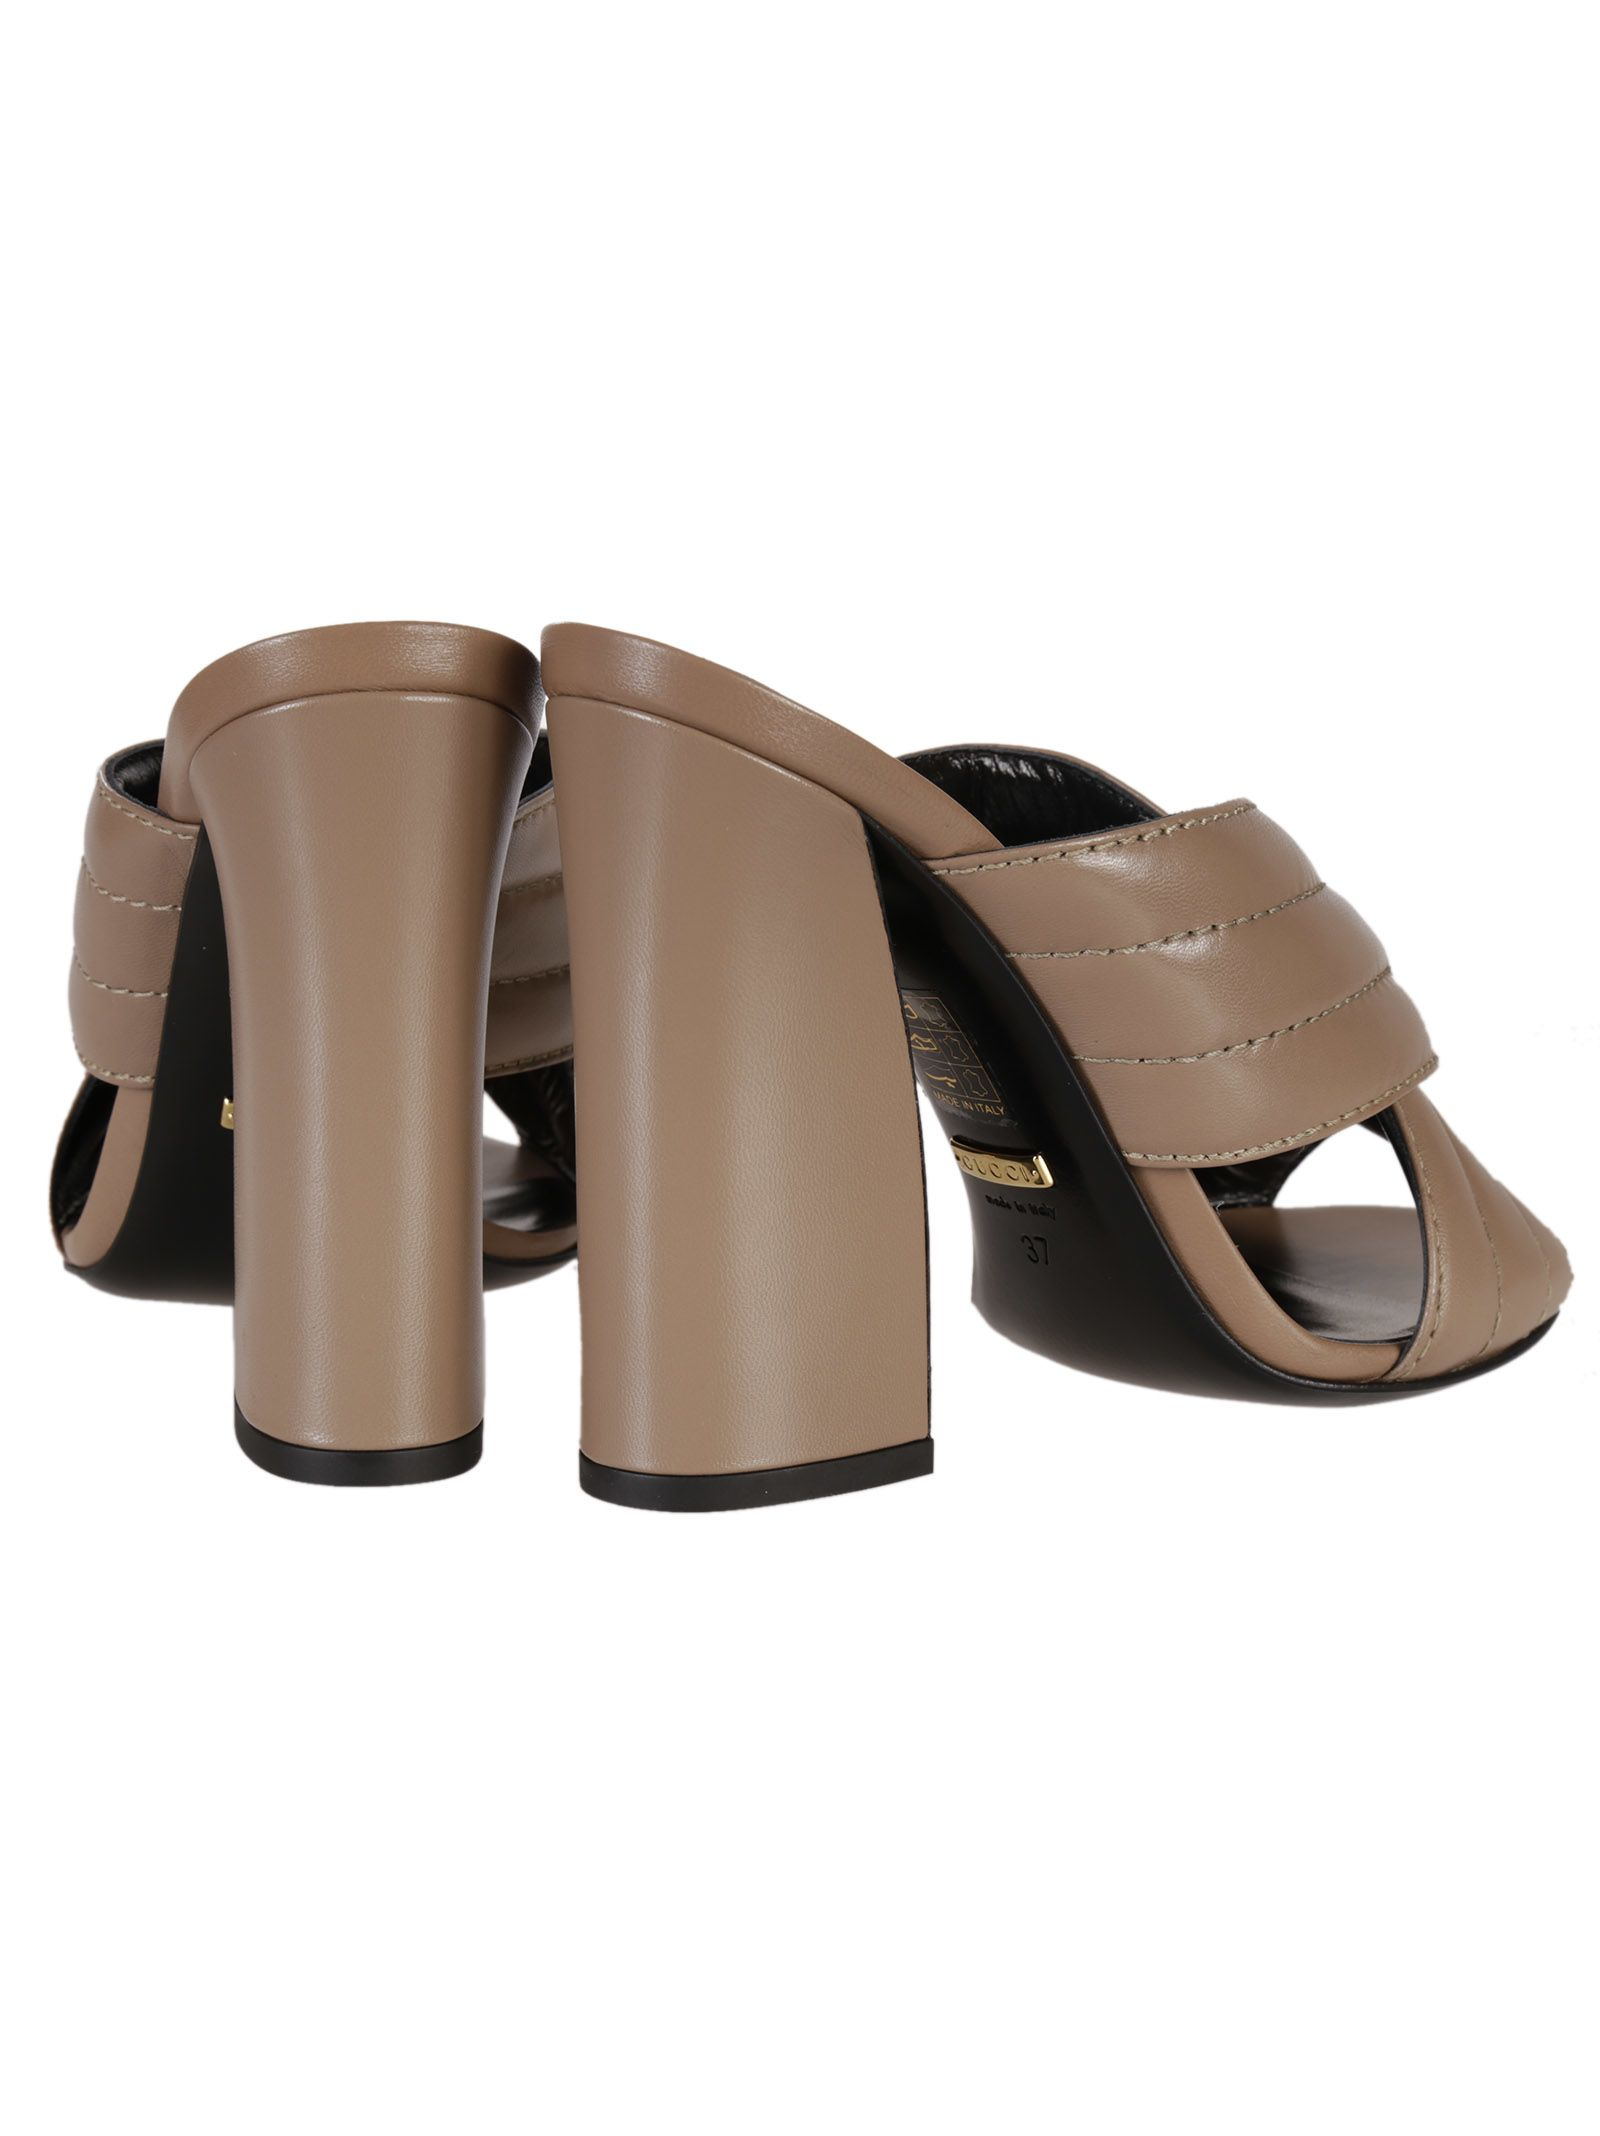 70b6f71e45b ... Gucci Leather Crossover Sandals - Neutral